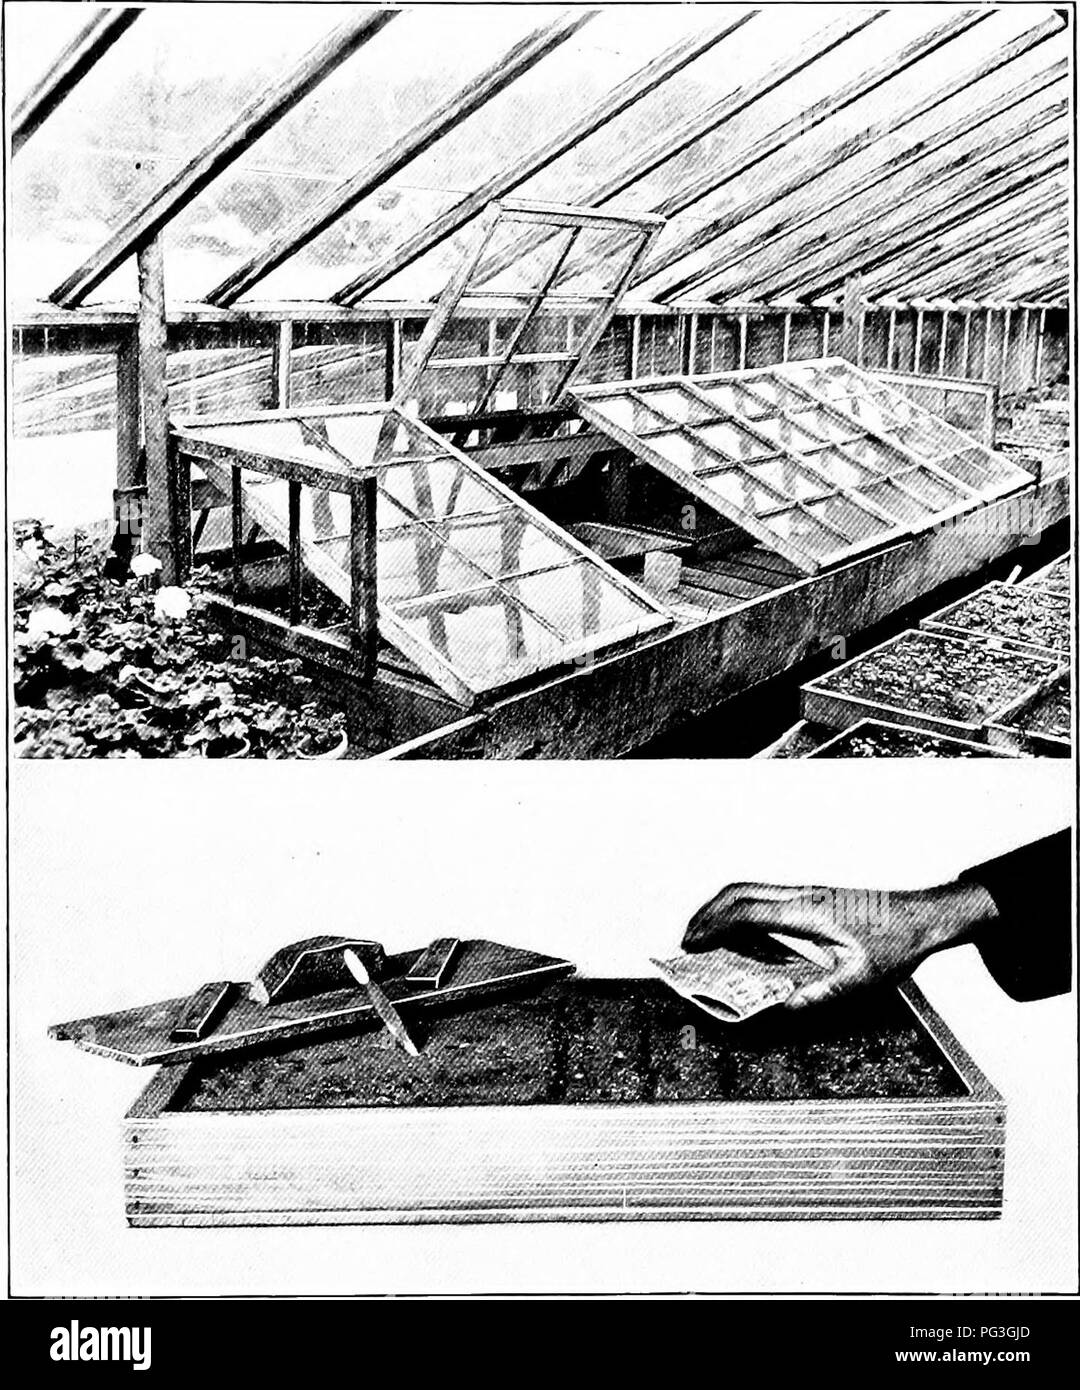 """. Around the year in the garden, a seasonable guide and reminder for work with vegetables, fruits, and flowers, and under glass. Gardening; Vegetable gardening. Plate i.—If you have only a small greenhouse with no """"warm section"""" here is a way of rigging up a frame in which to start things requiring a higher temperature than the house affords,—such as cucumbers, melons and tender flowers. {Lower) This shows the method of preparing a flat for the sowing of fine seeds; if they are very small, it is best to distribute them di- rect from the packet, by tapping it gently with the finger. A - Stock Image"""